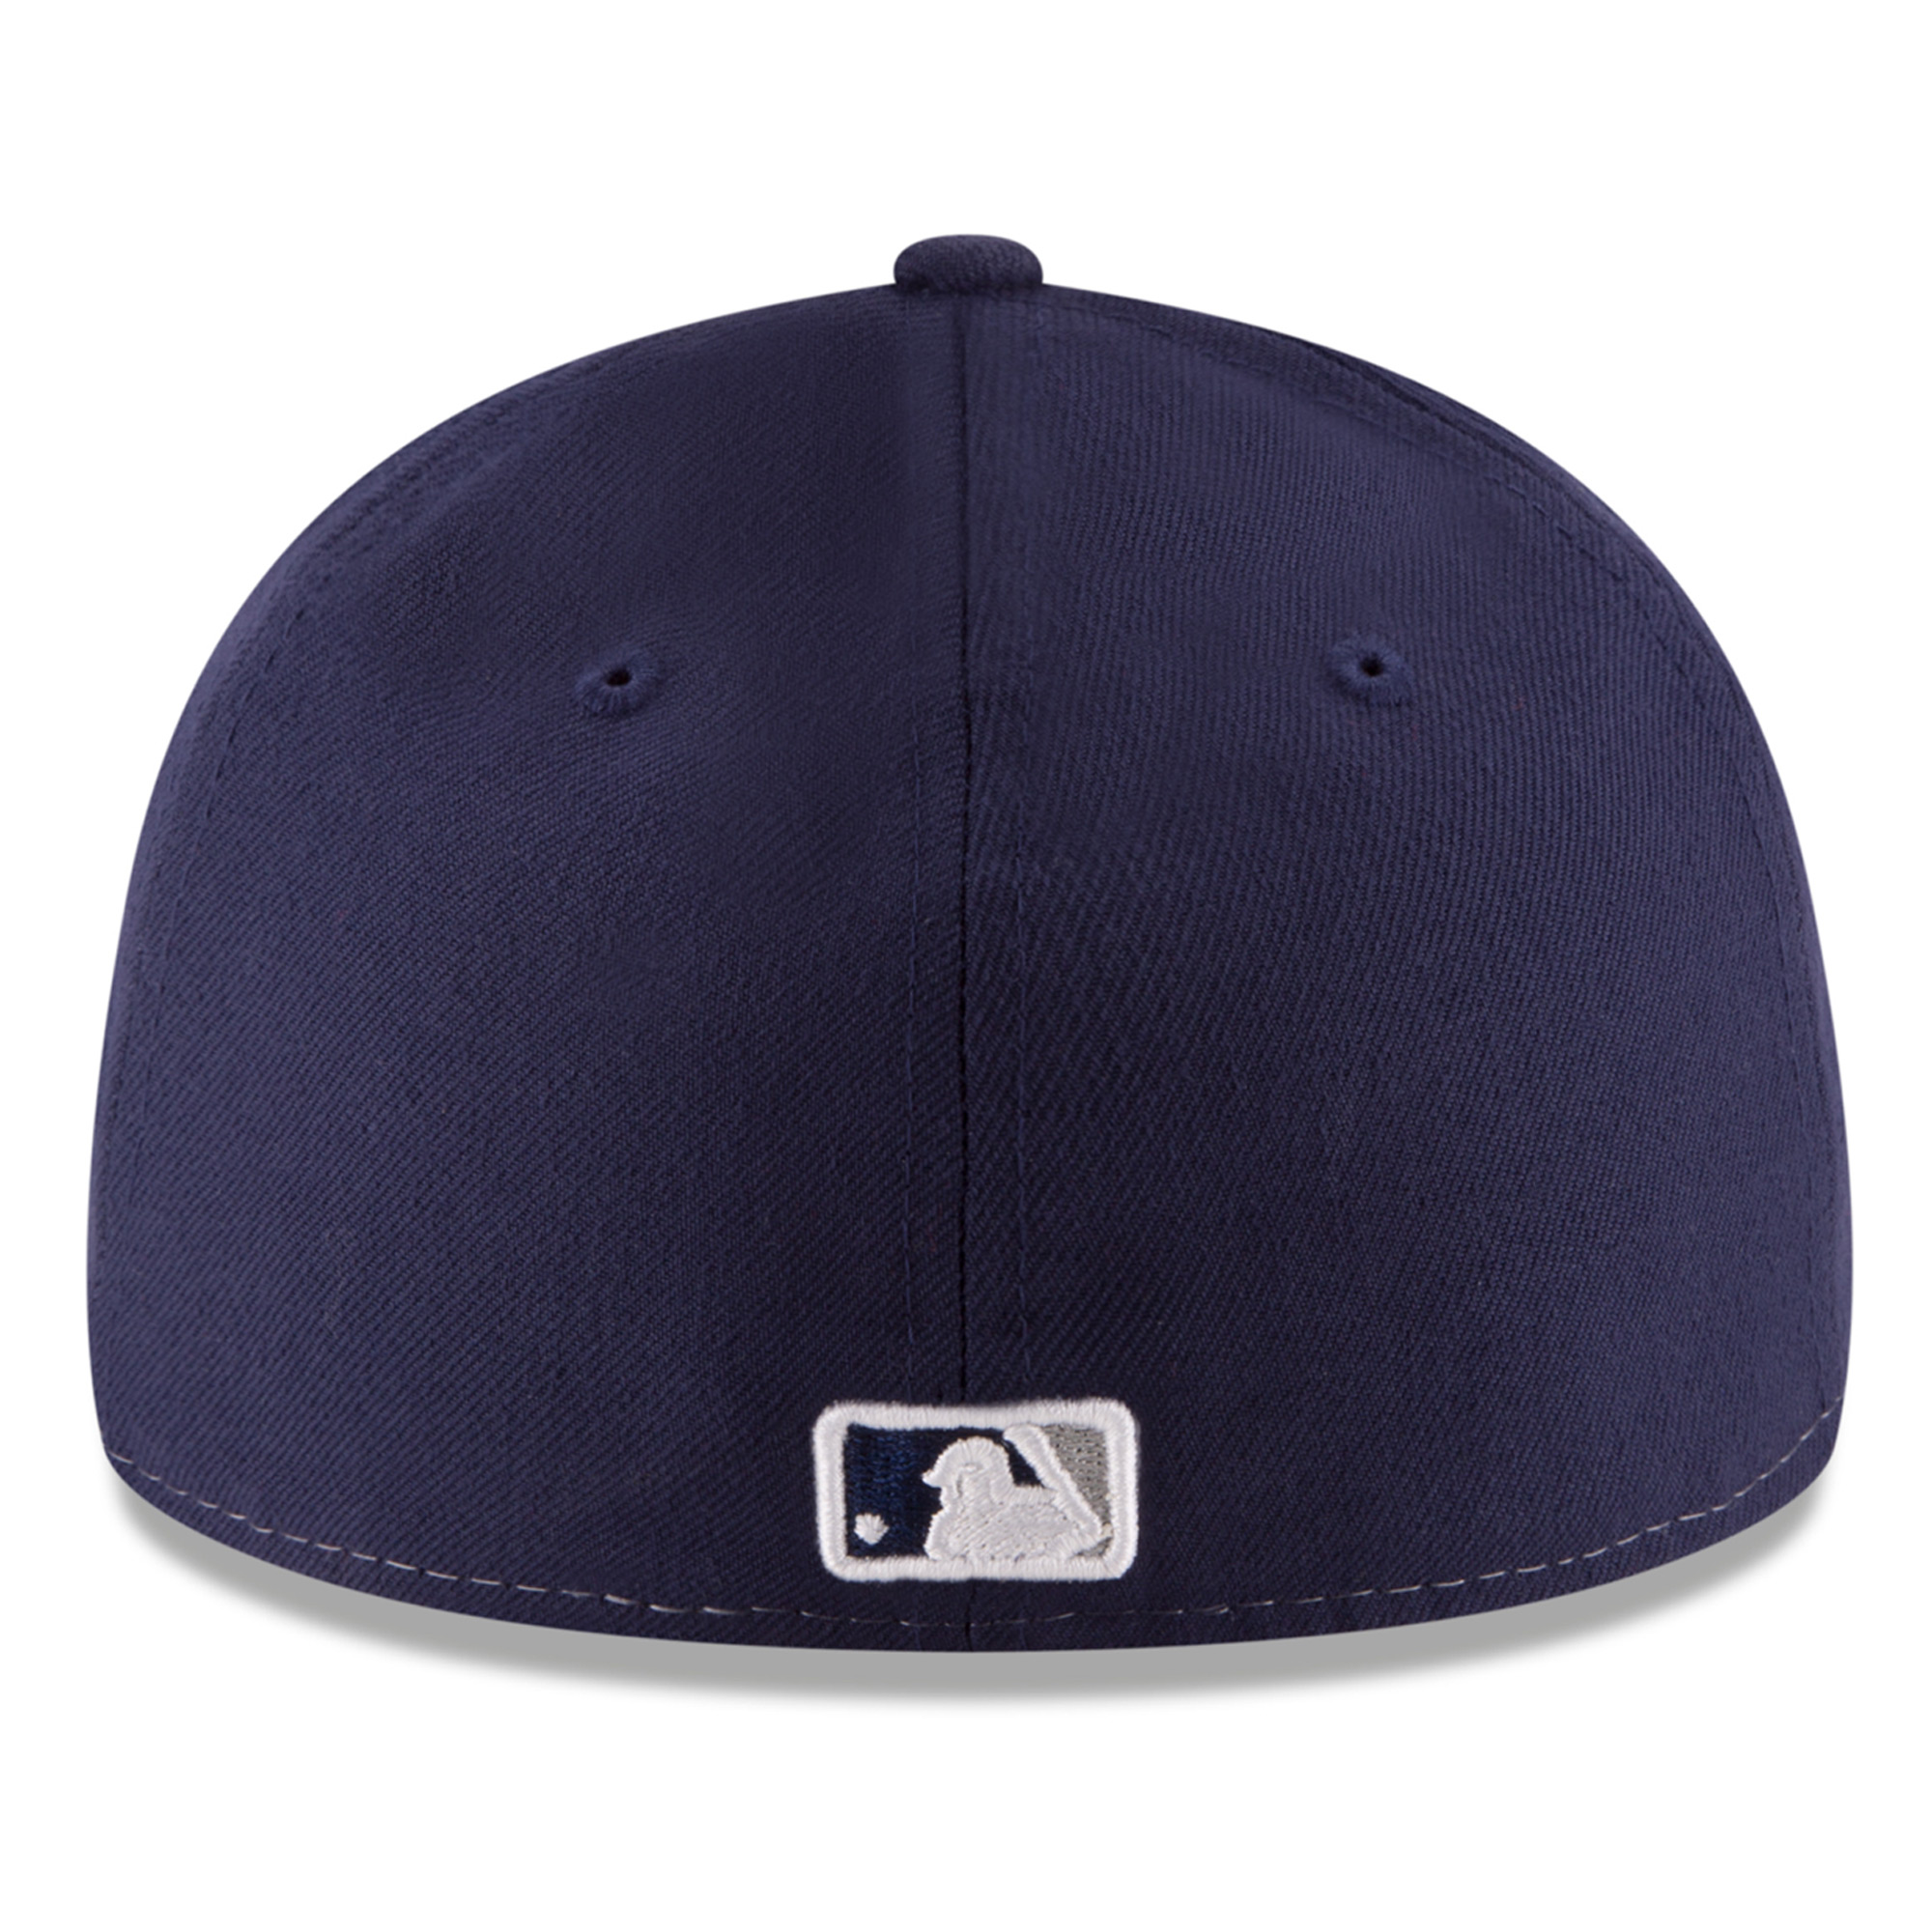 82bd57ce553 San Diego Padres New Era Front N Center Low Profile 59FIFTY Fitted Hat -  White Gray - Walmart.com